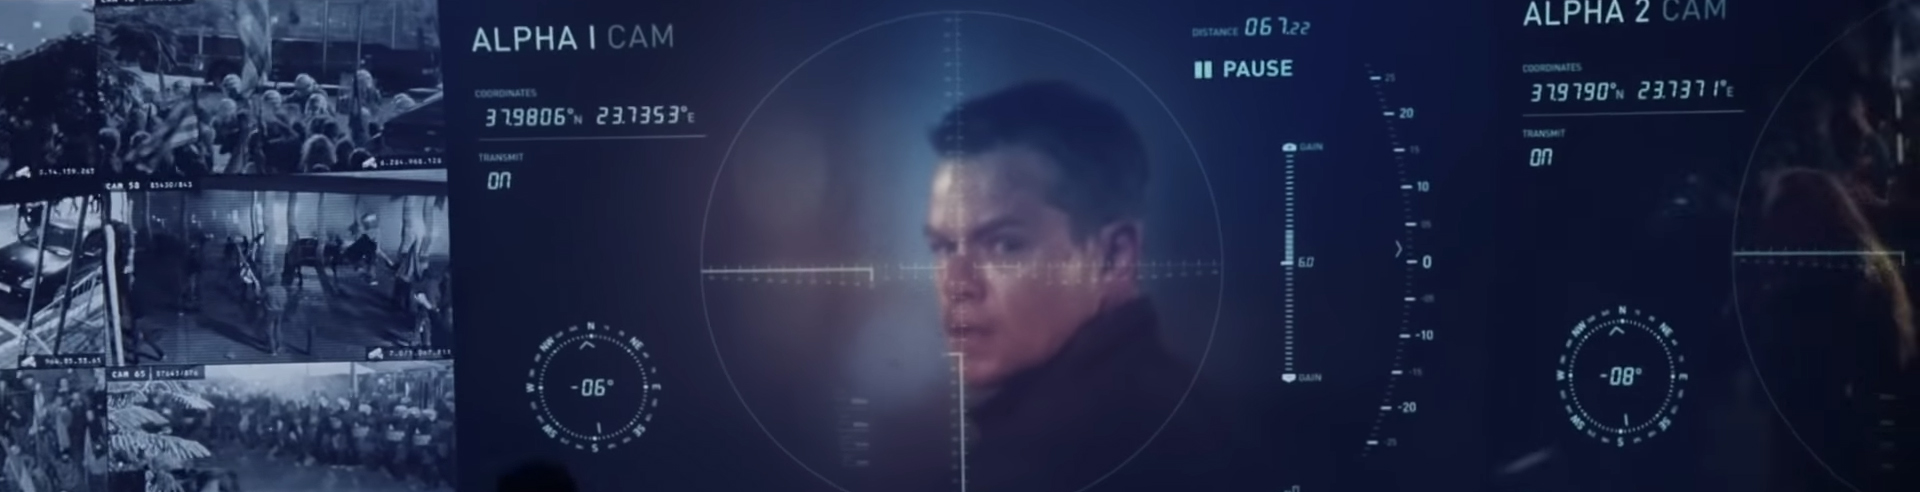 Jason Bourne. Image Credit: Universal Pictures.